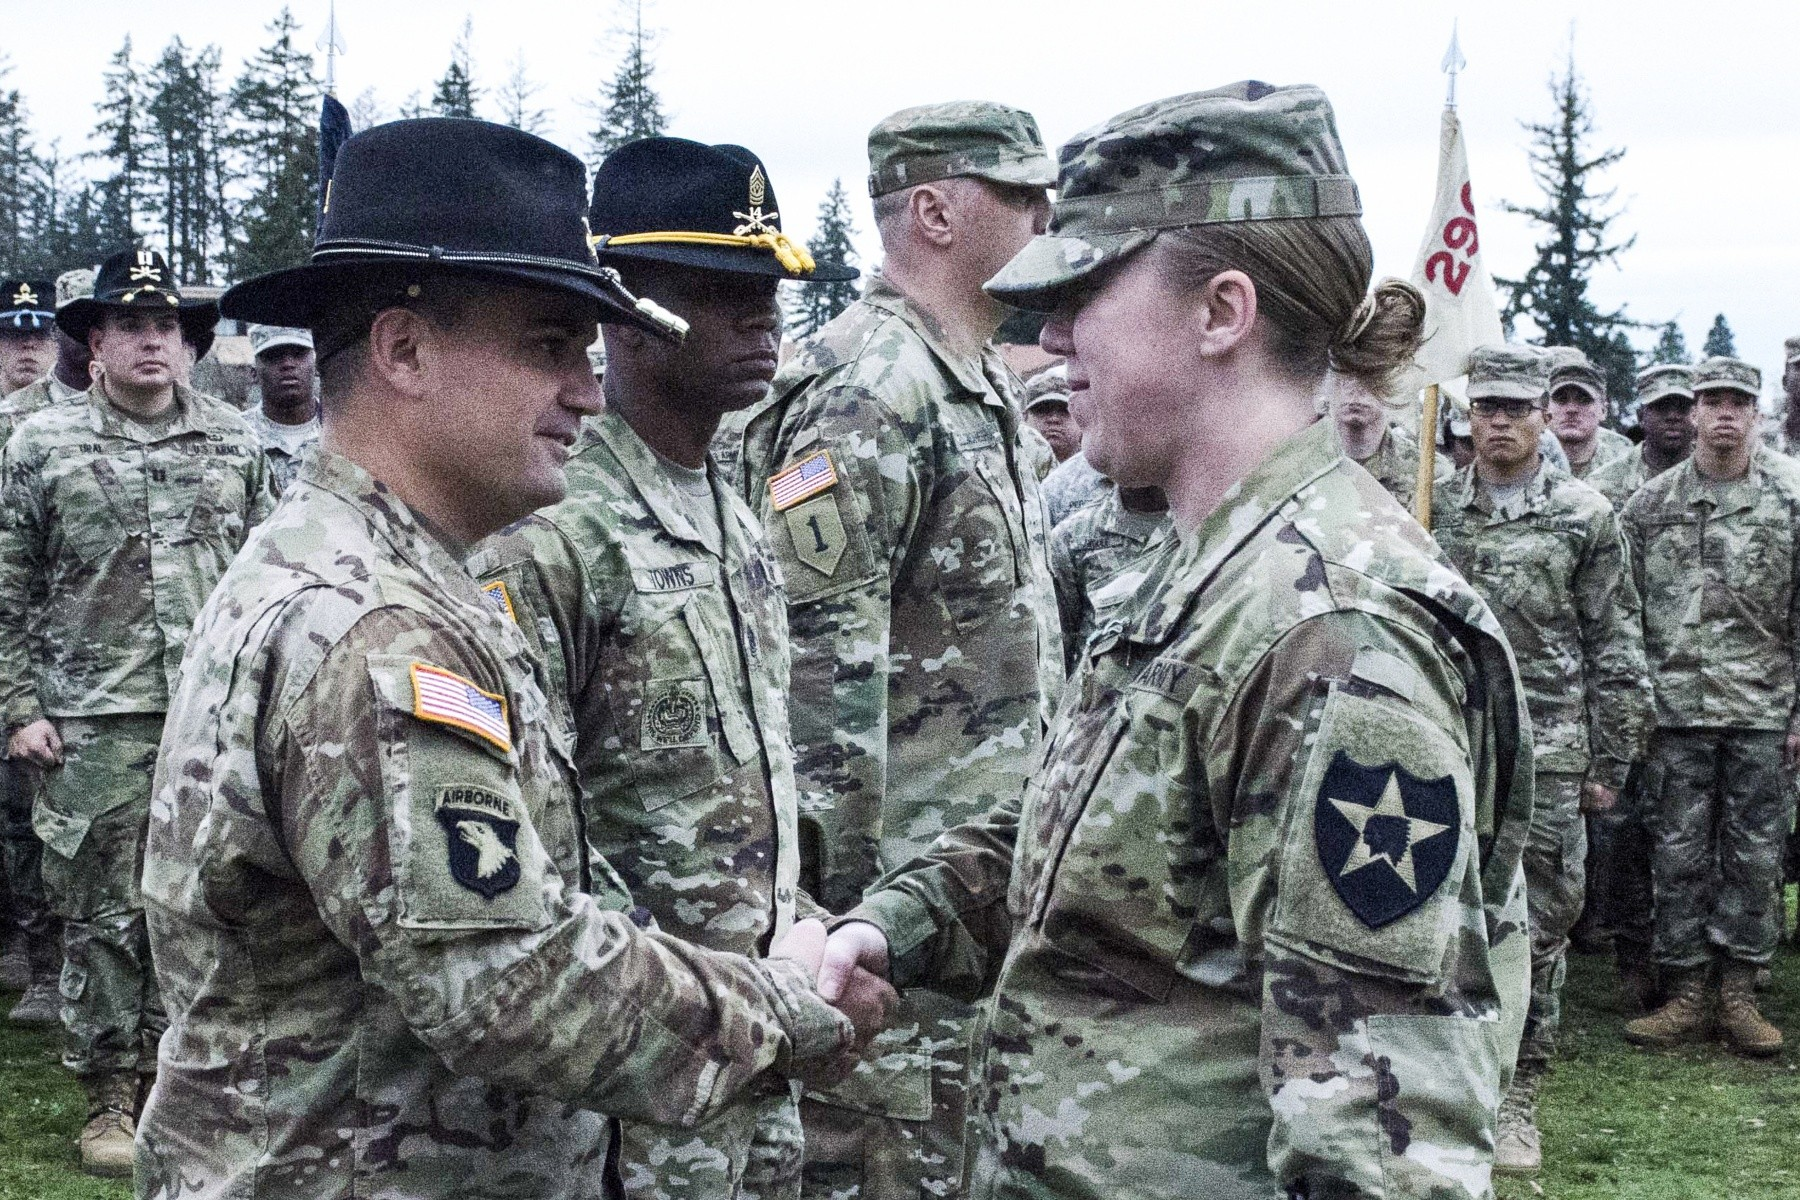 Nco Recognized For Acts Of Heroism Article The United States Army